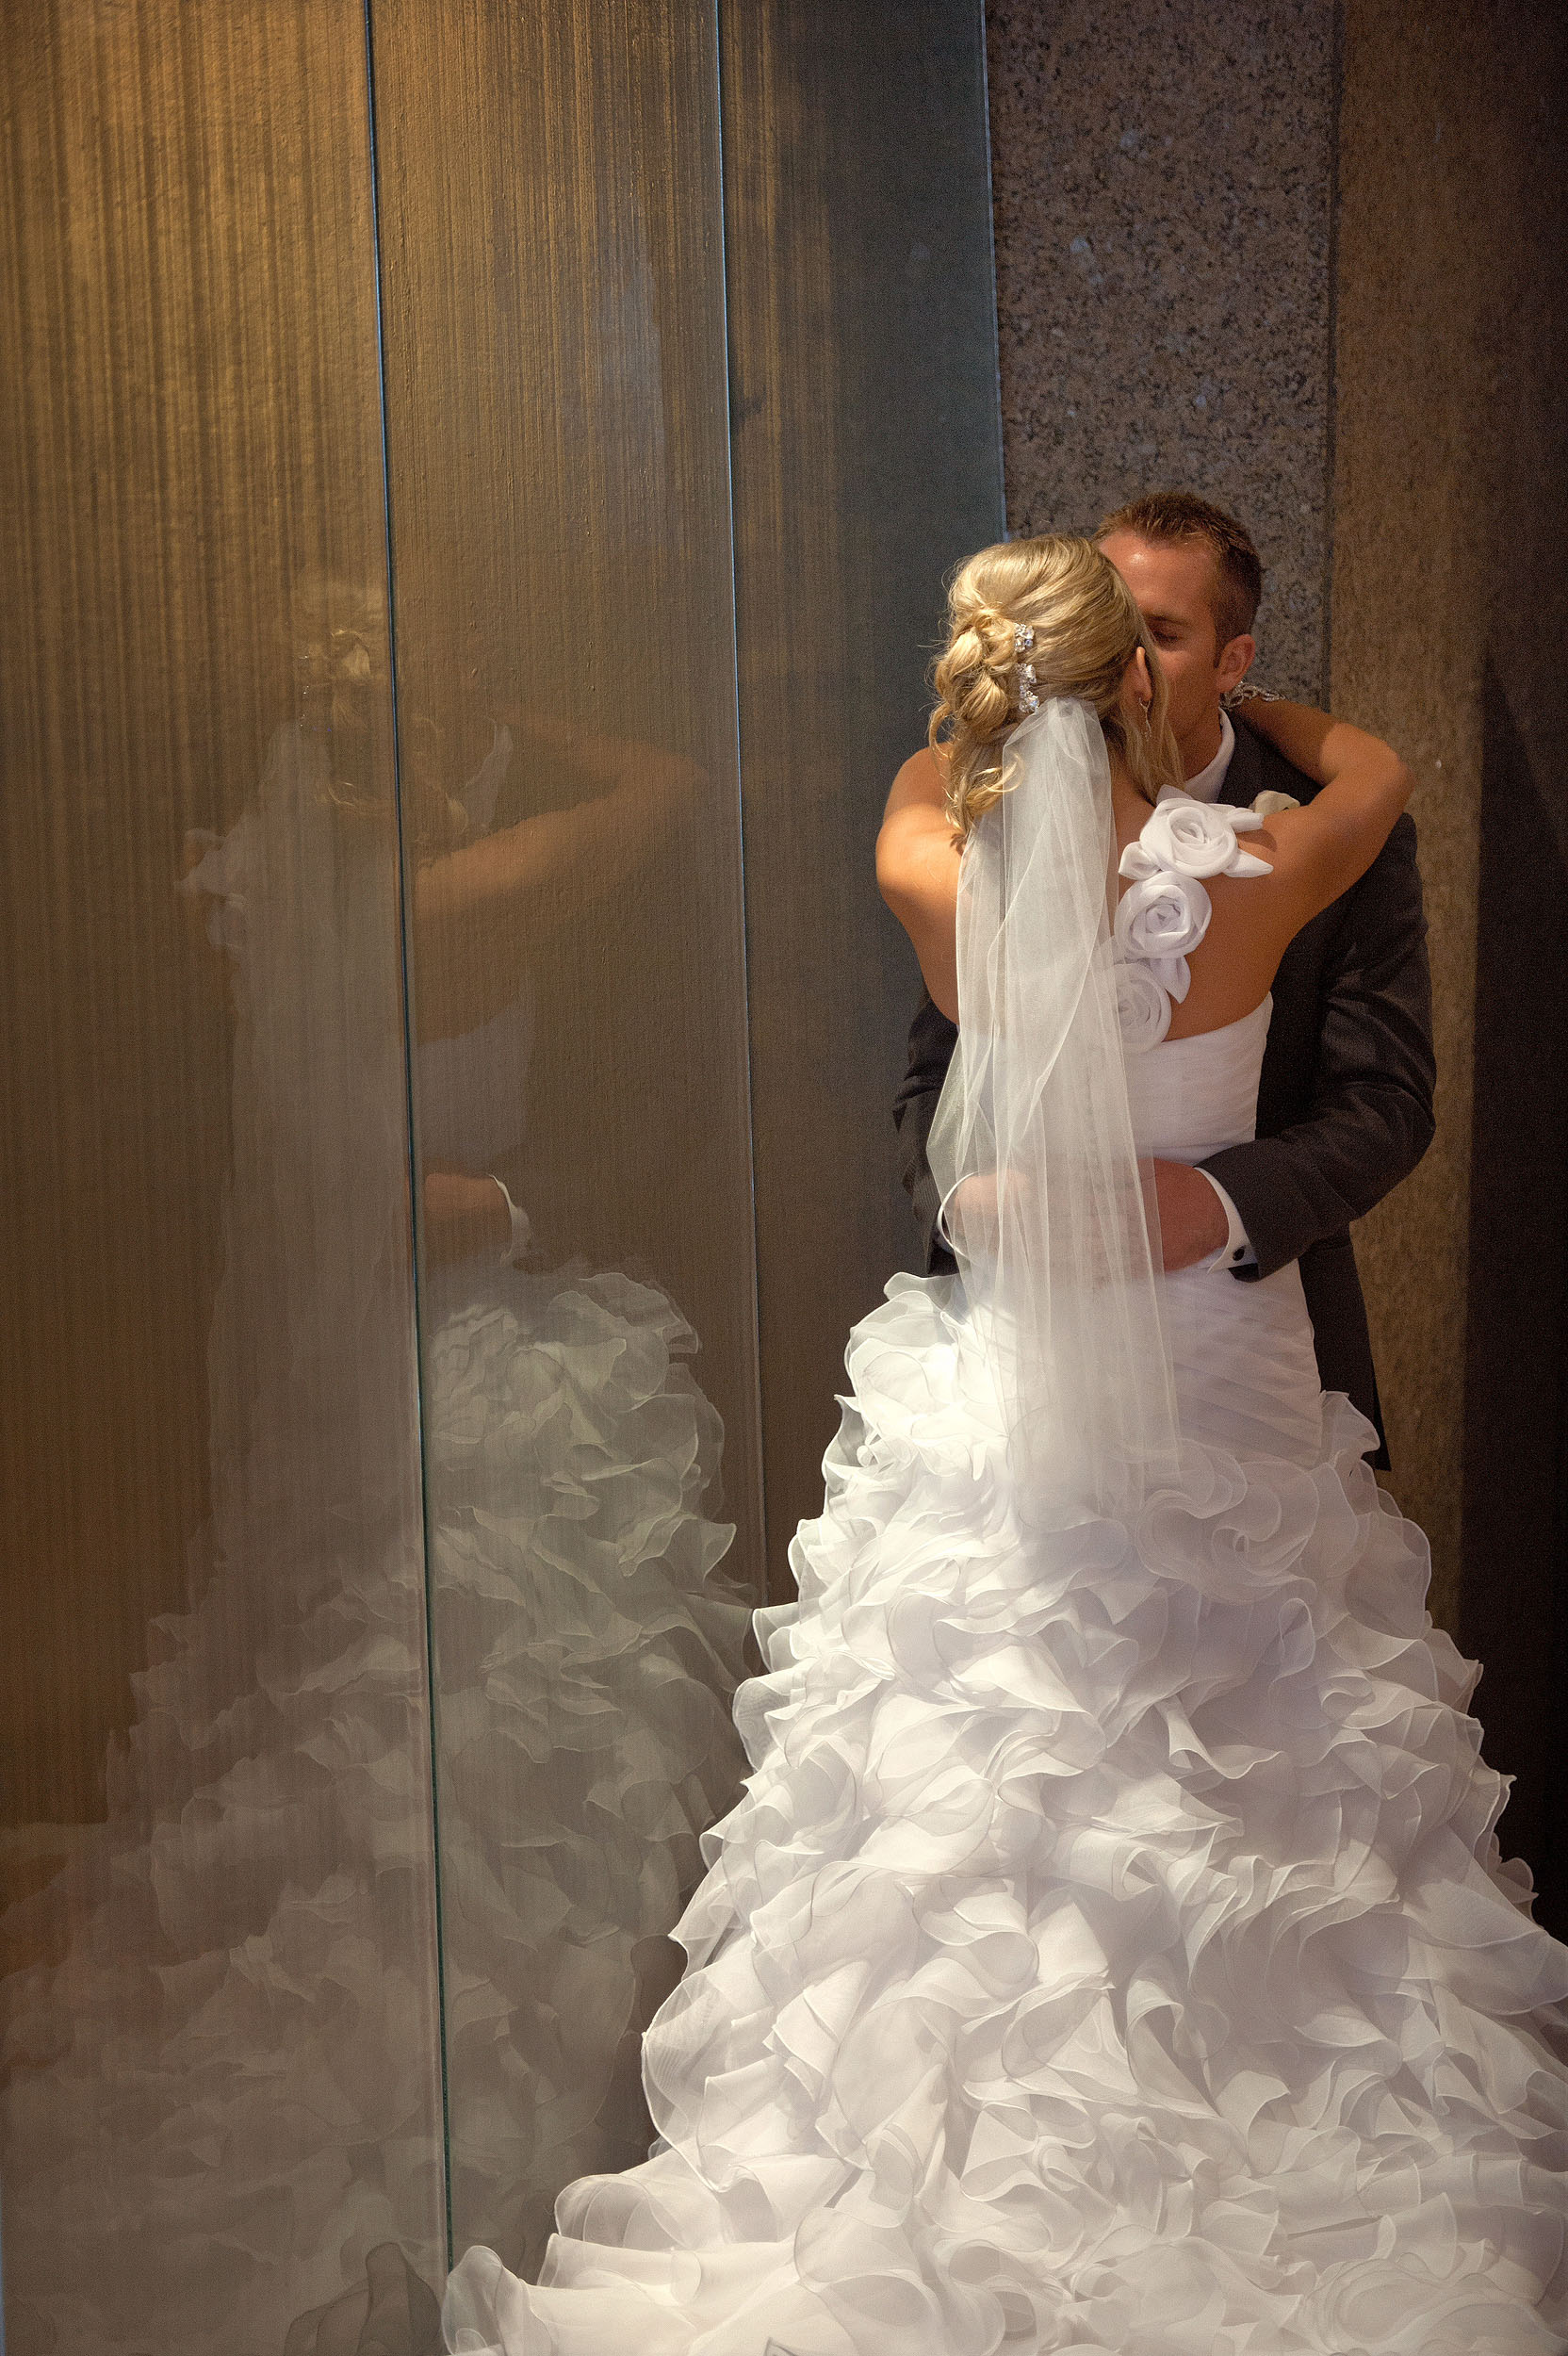 Bride and groom by glass wall at Seven-Degrees in Laguna Beach.